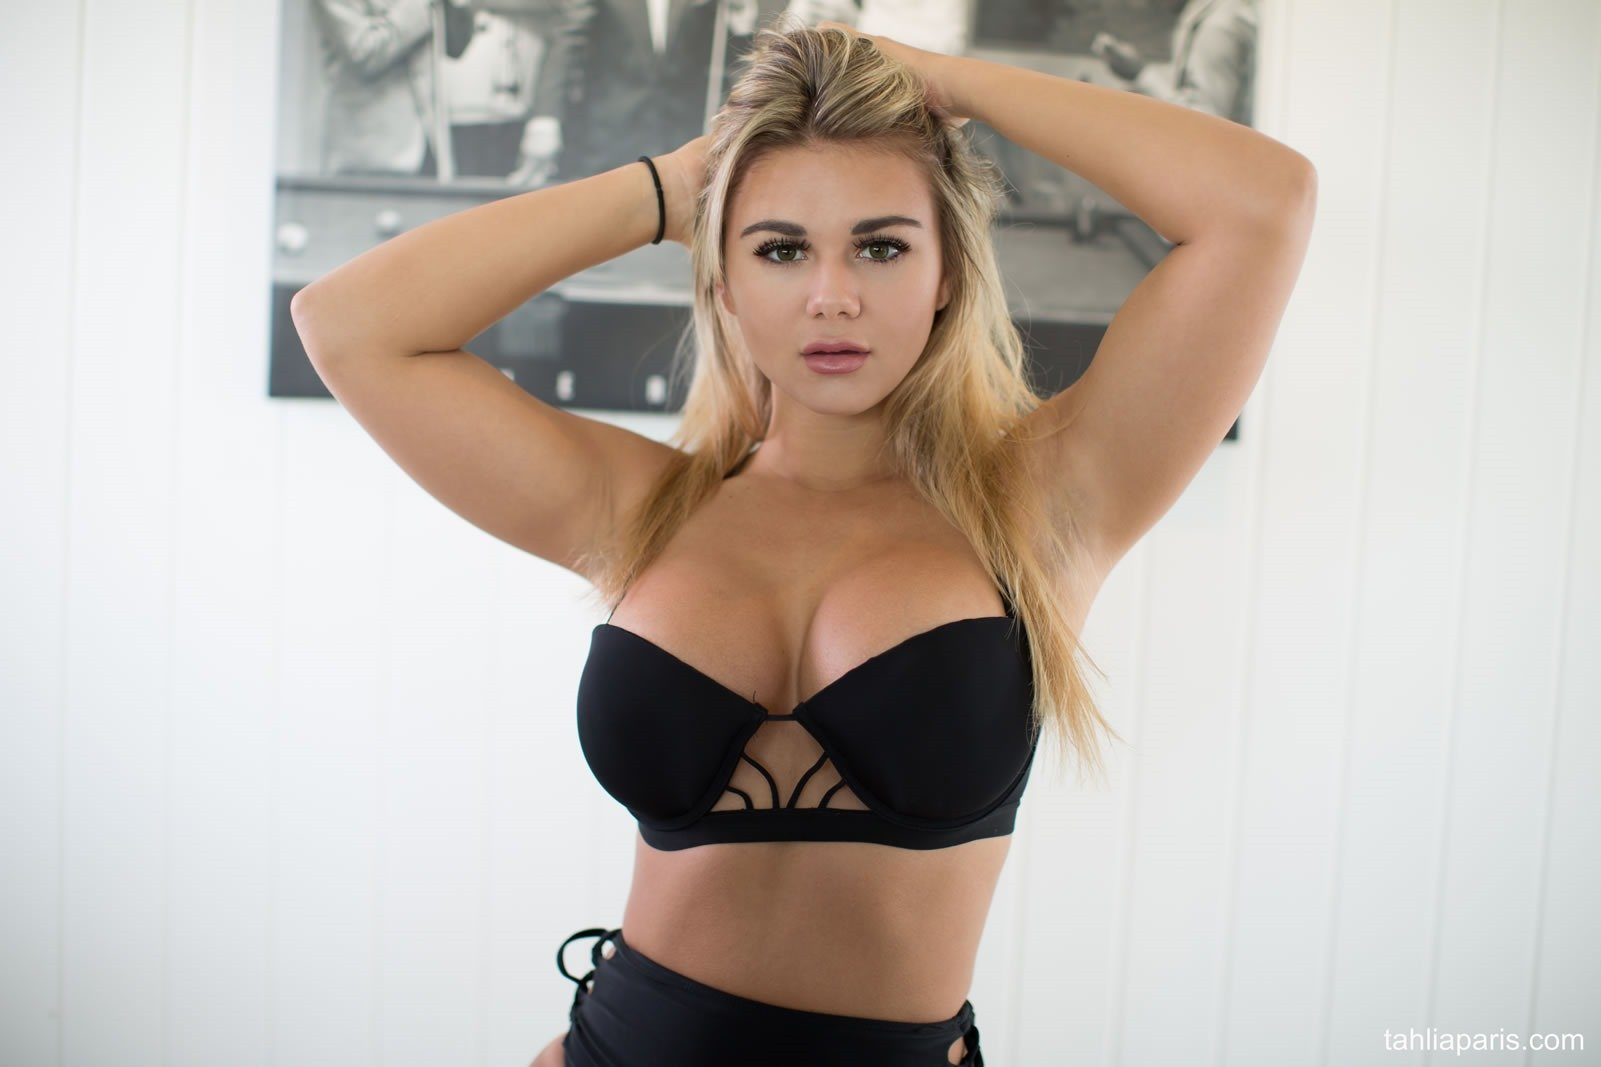 ... - Fine Hotties - Hot Naked Girls, Celebrities, and HD Porn Videos